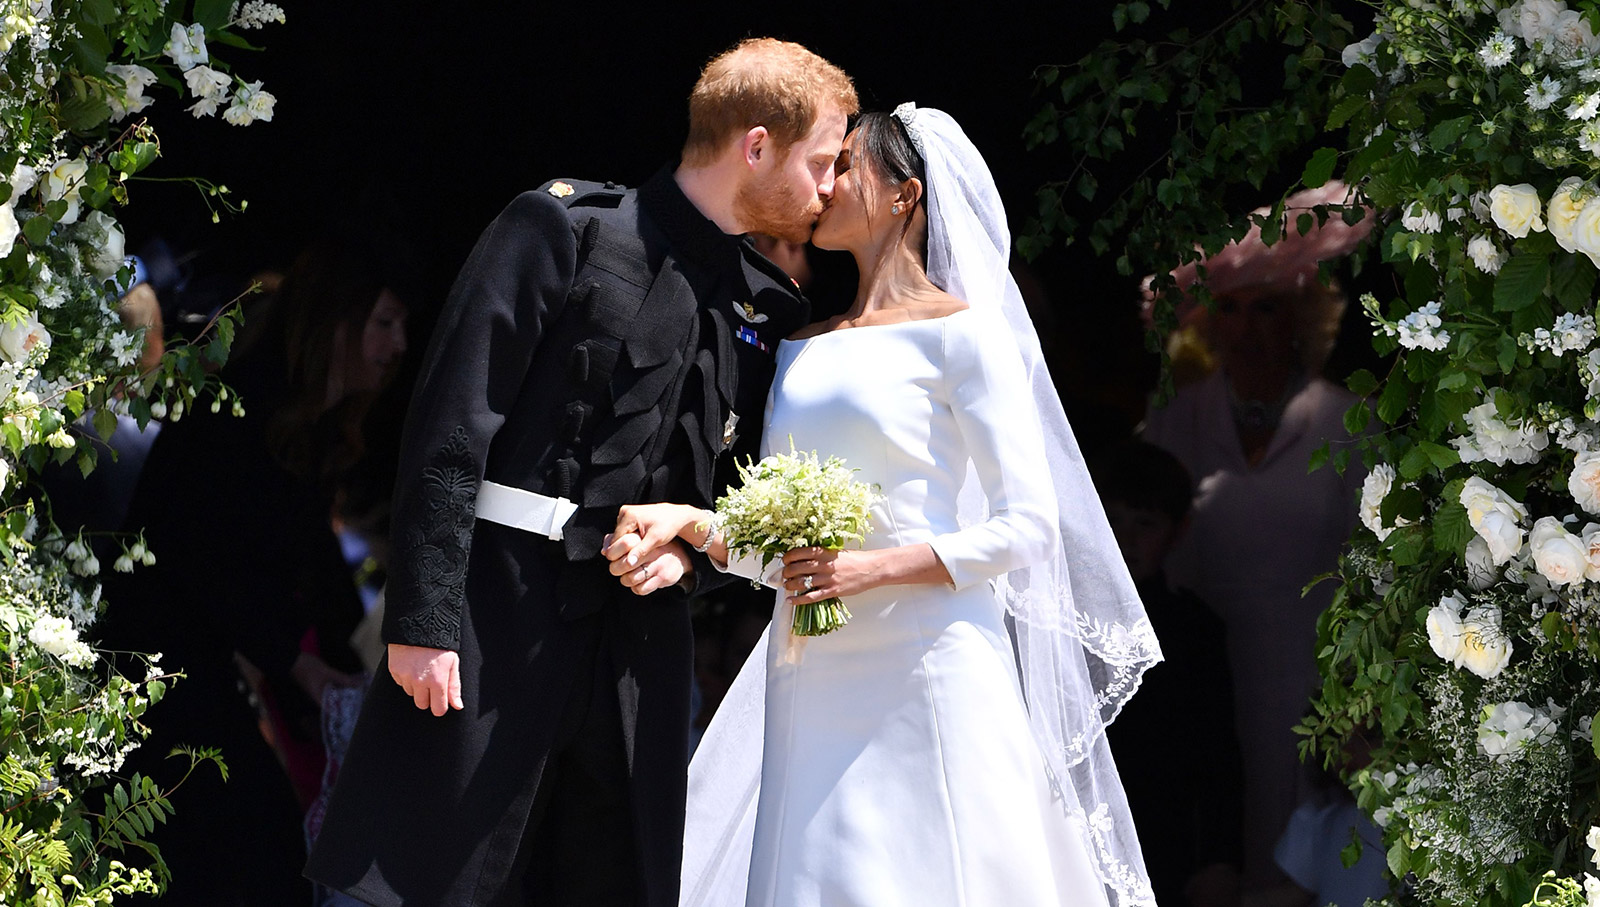 Royal Wedding Time In Us.Paparazzi Perform Risky Move To Capture Viral Royal Wedding Photo